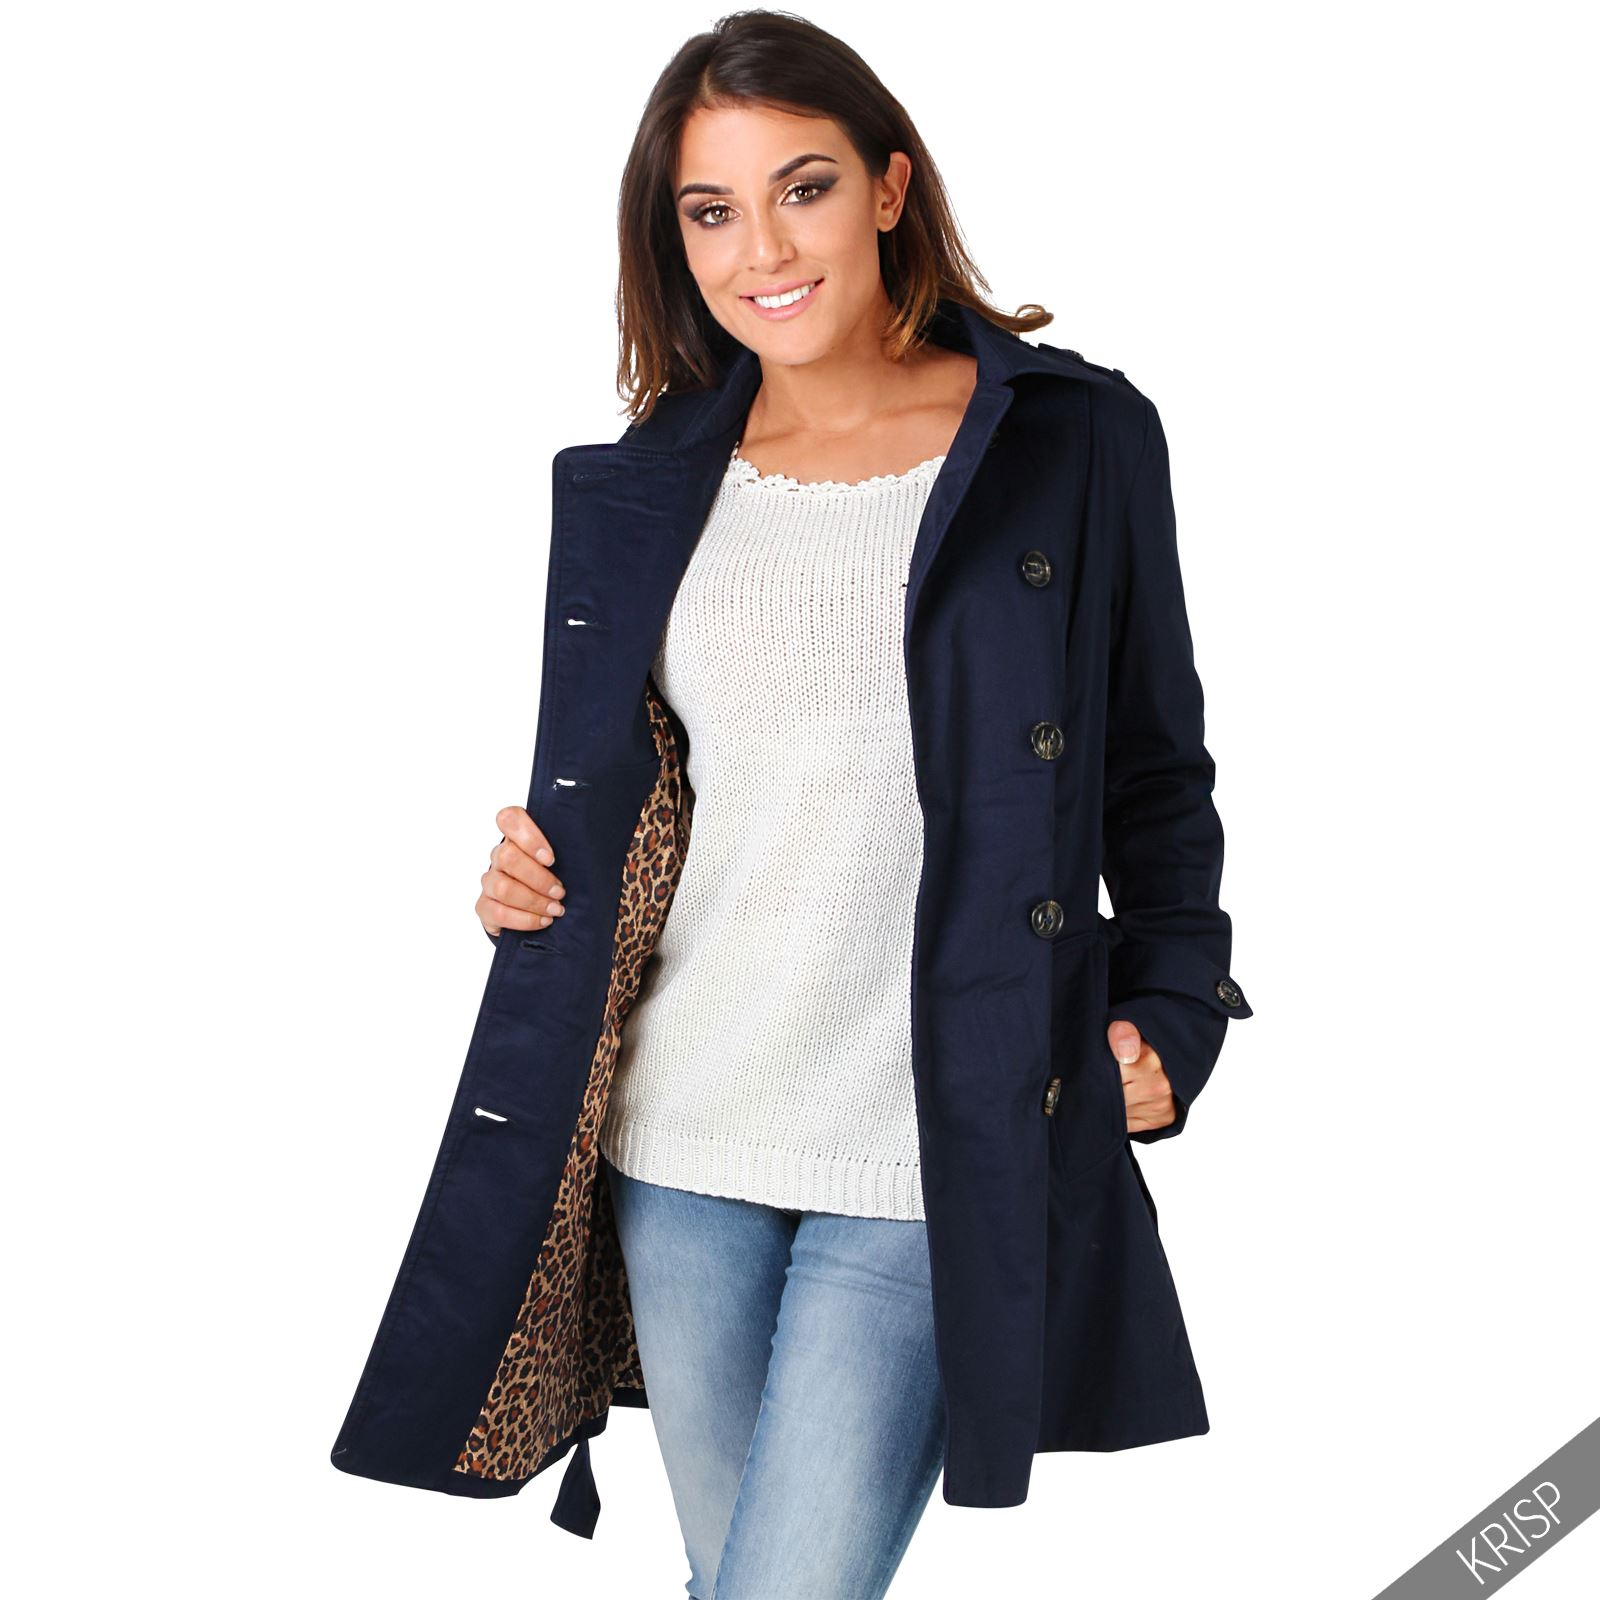 Discover trench coats for women at ASOS. Shop from a range of trench coats and jackets including hooded and leather trench coats available from ASOS. your browser is not supported. 68 styles found. ASOS WHITE check coat with neck tie detailing. £ Levi's Long Line Check Coat.